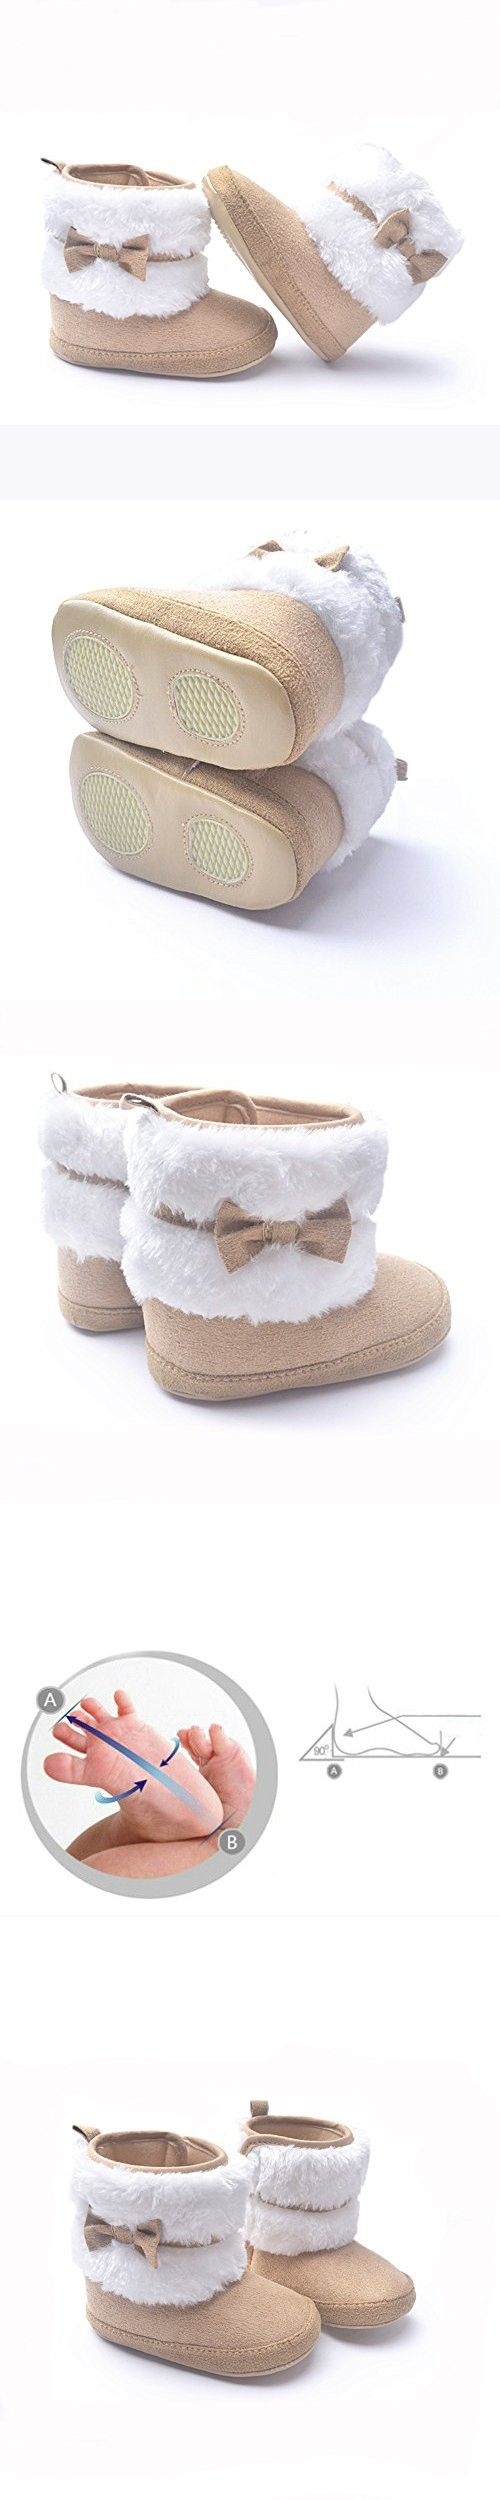 LIVEBOX Baby Girls' Premium Soft Sole Bow Anti-Slip Mid Calf Warm Winter Infant Prewalker Toddler Snow Boots (M: 6~12 months, Khaki)